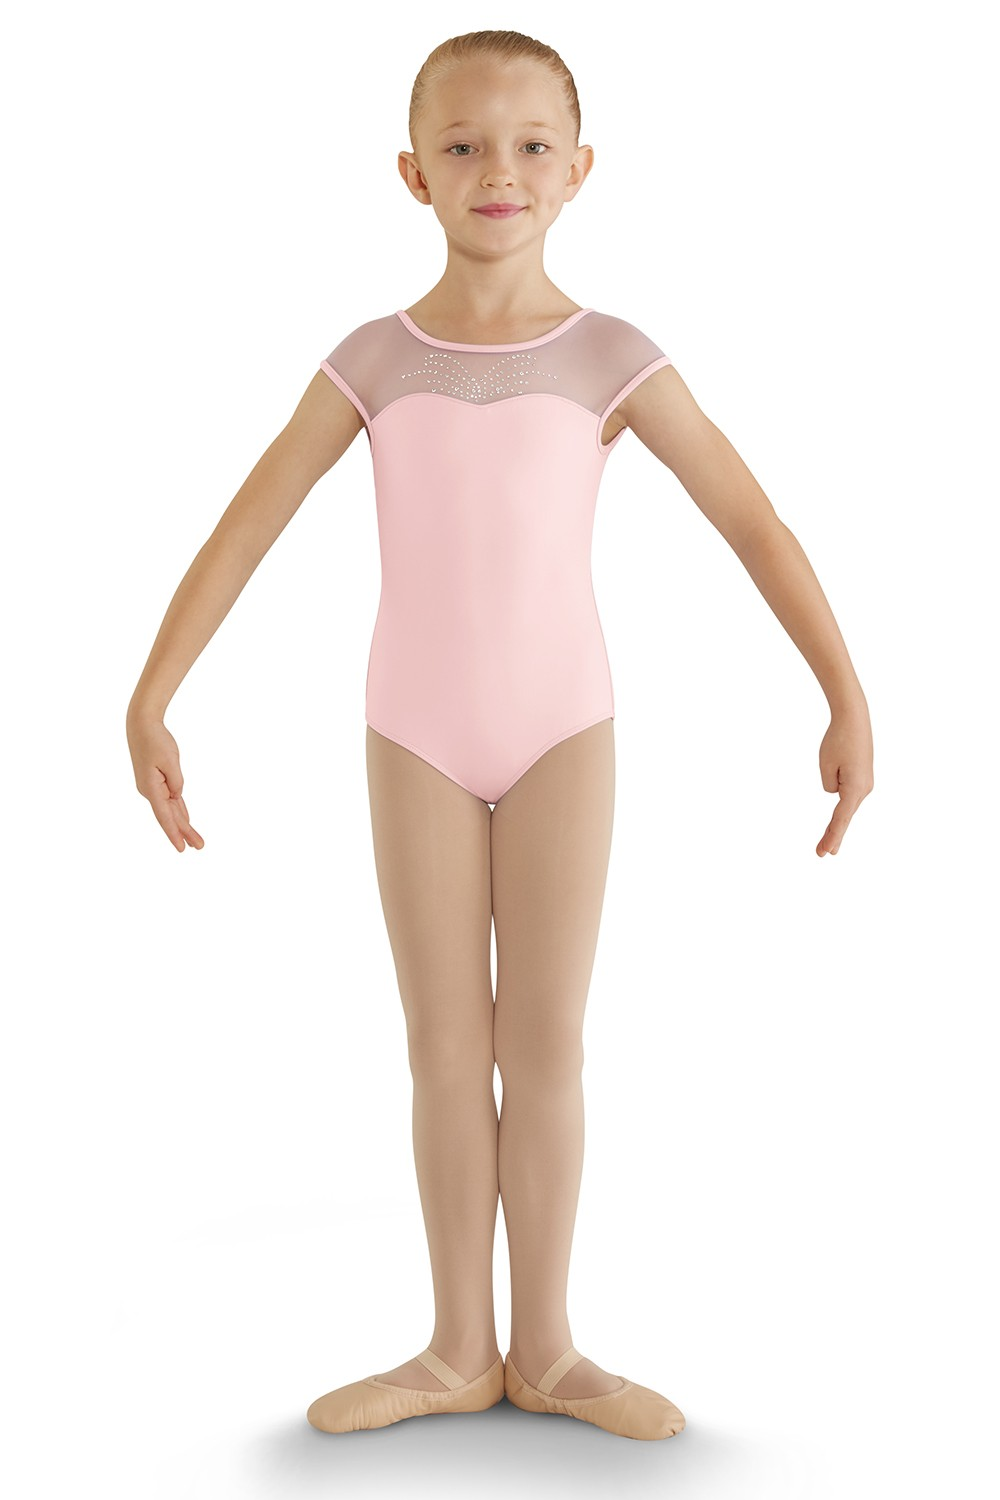 Cygni Girls Short Sleeve Leotards